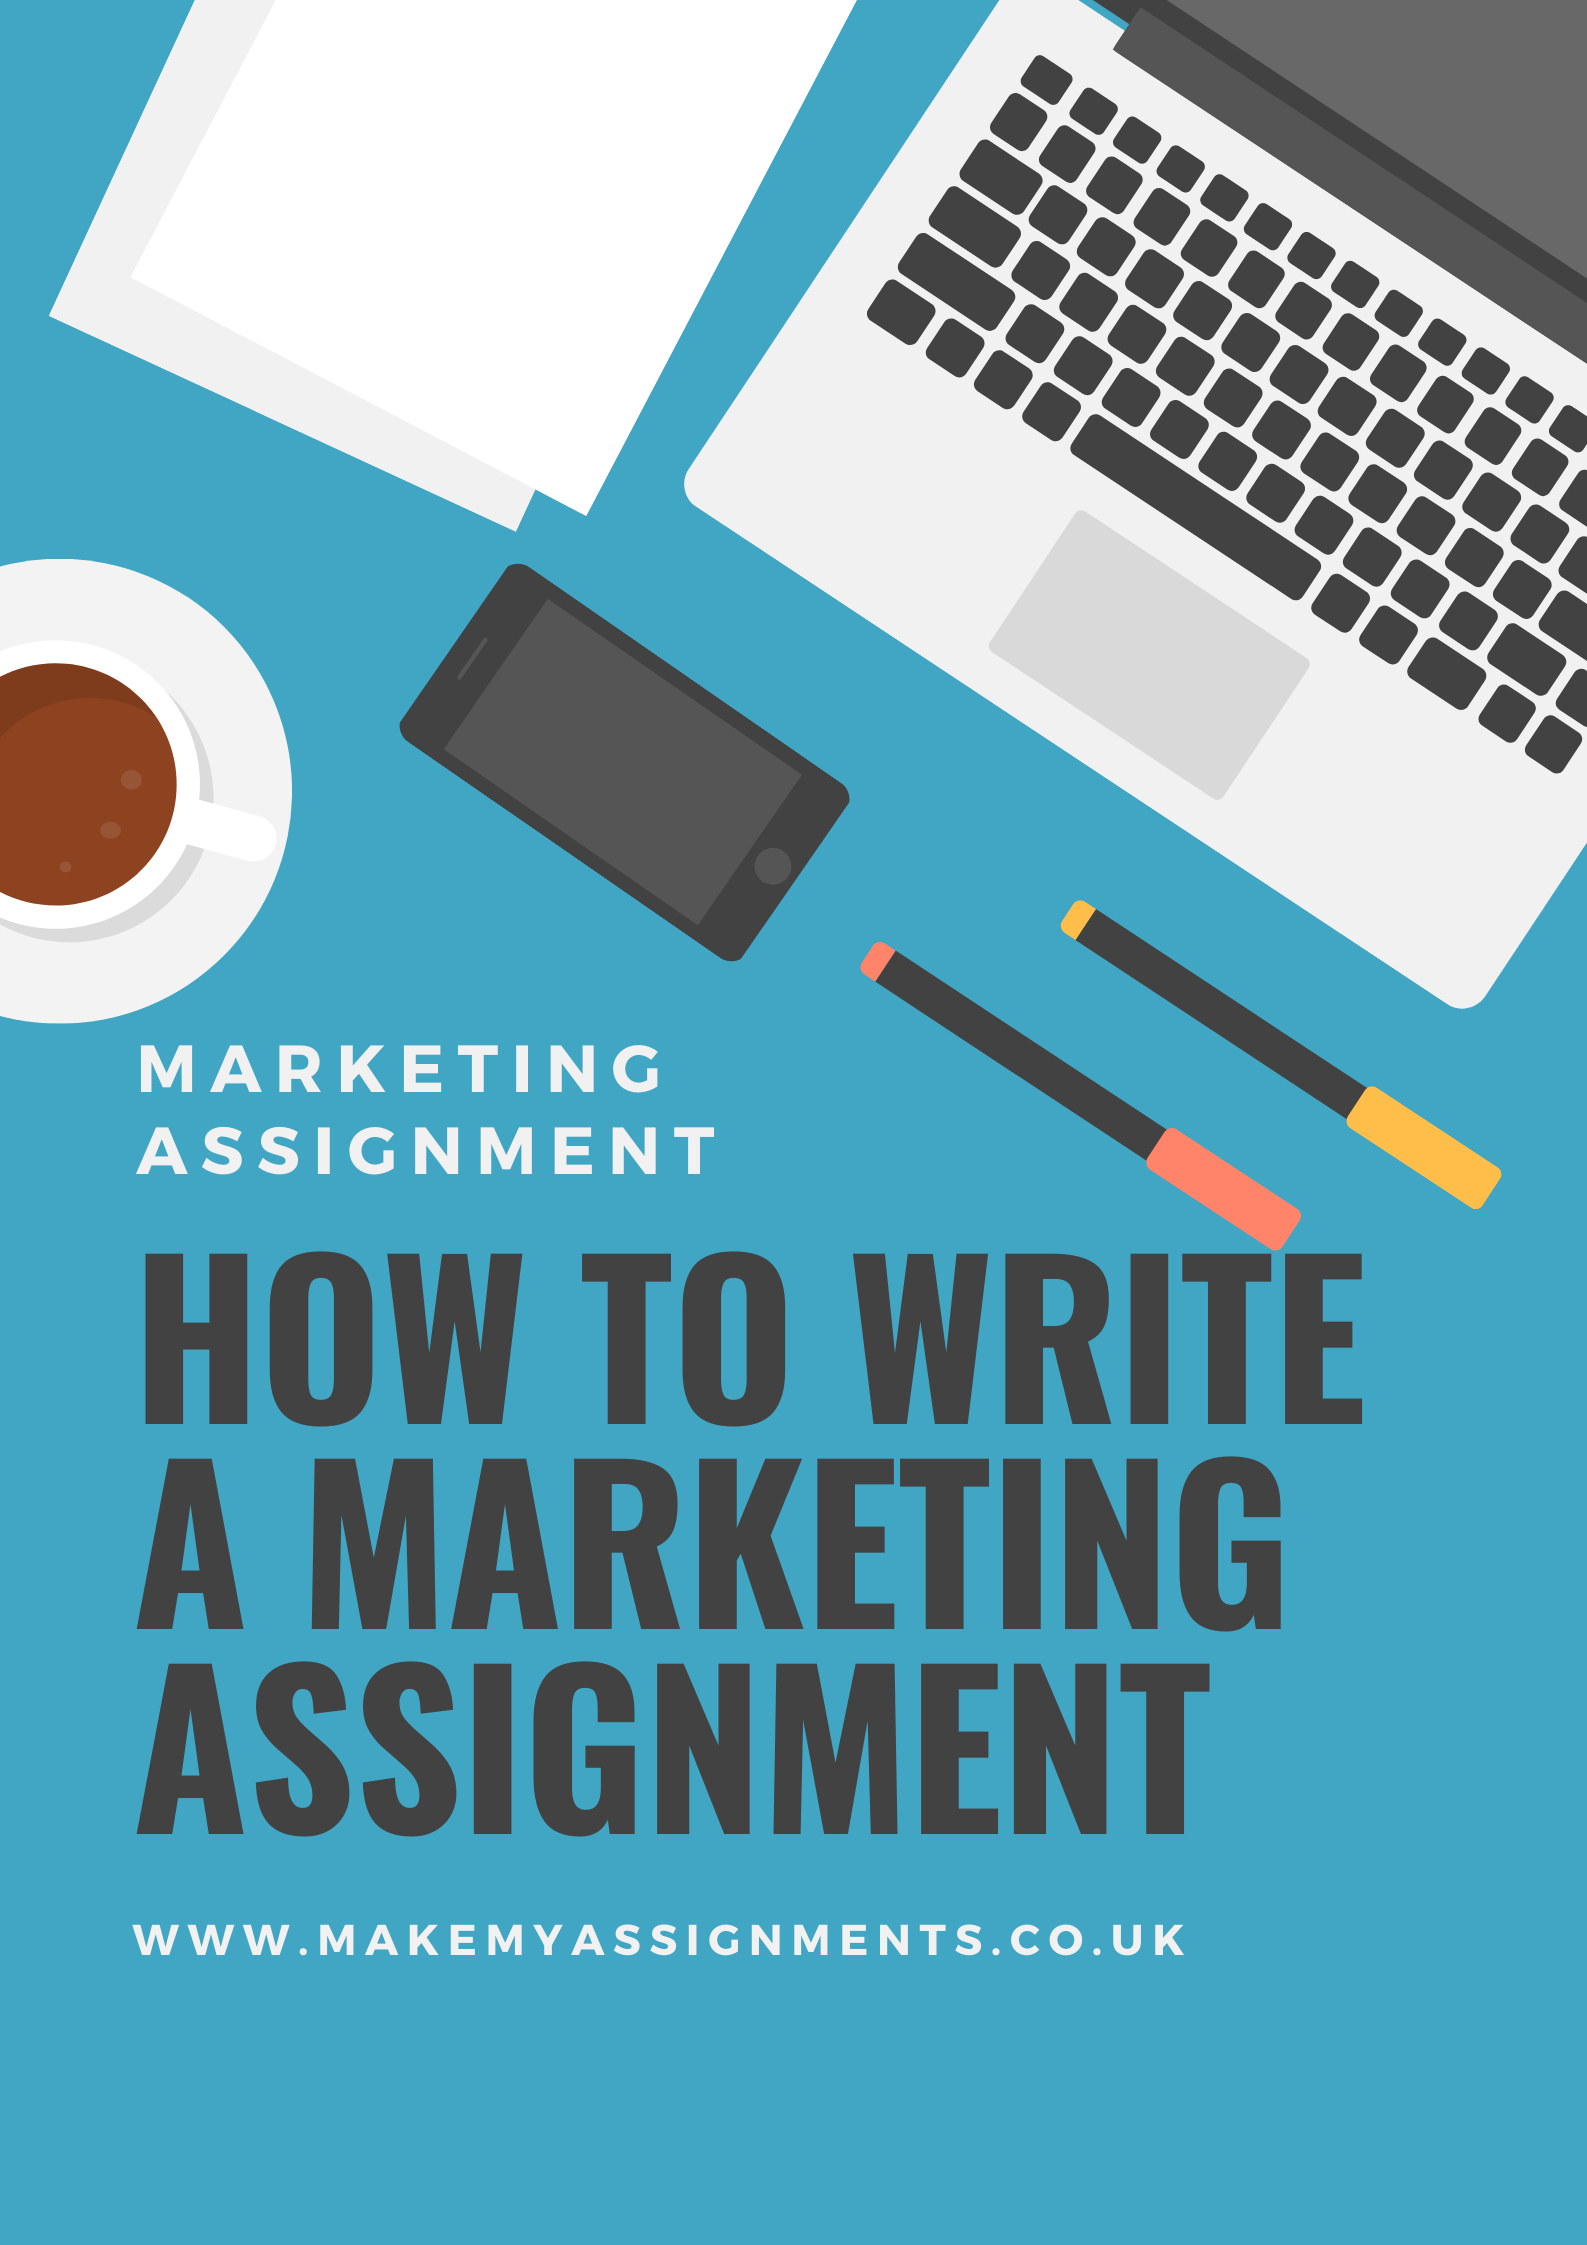 How to Write a Marketing Assignment